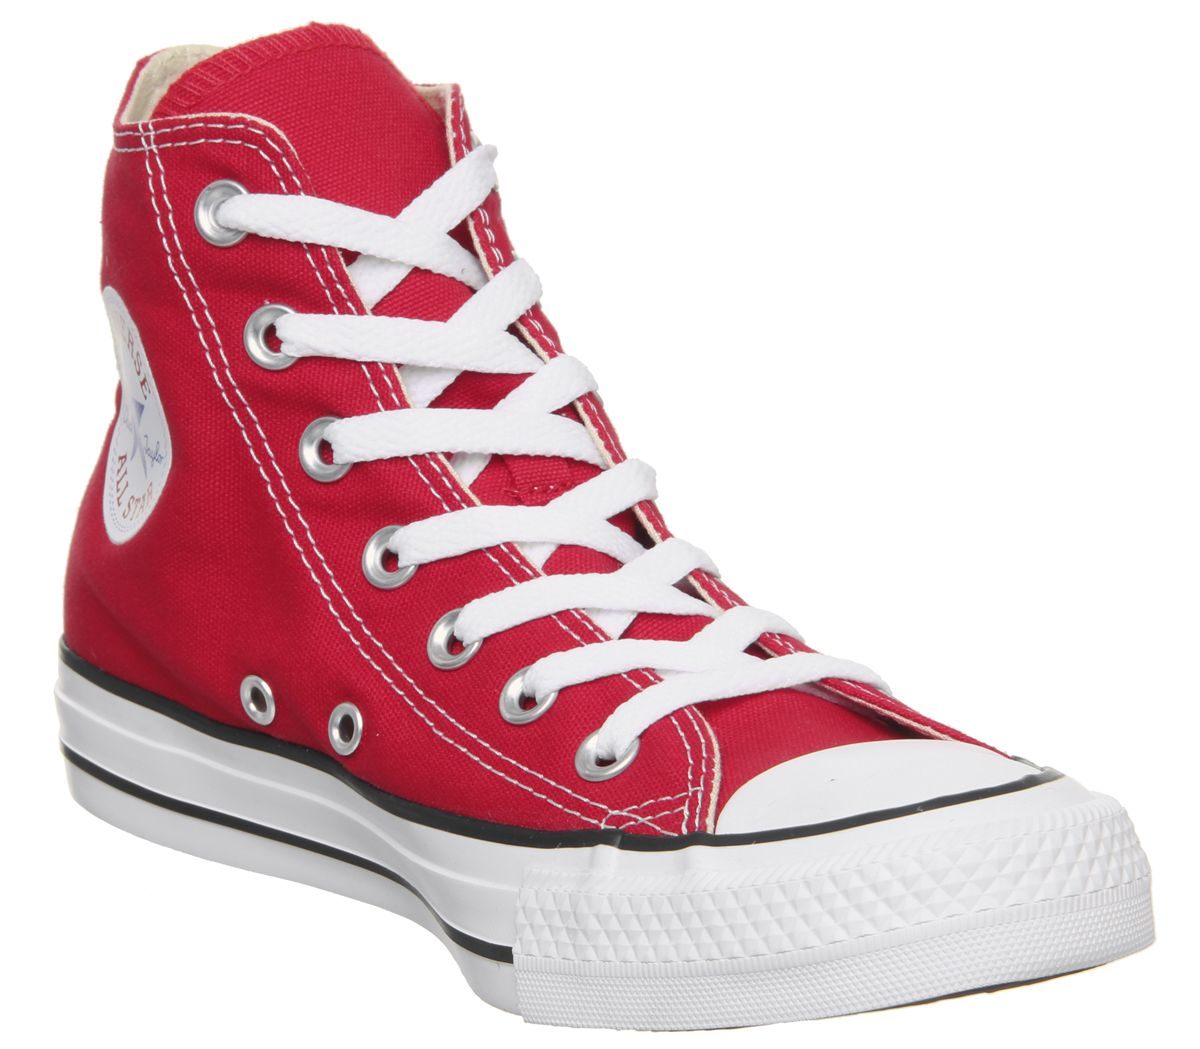 1b16f33a0d49 Converse All Star Hi Red Canvas - Unisex Sports